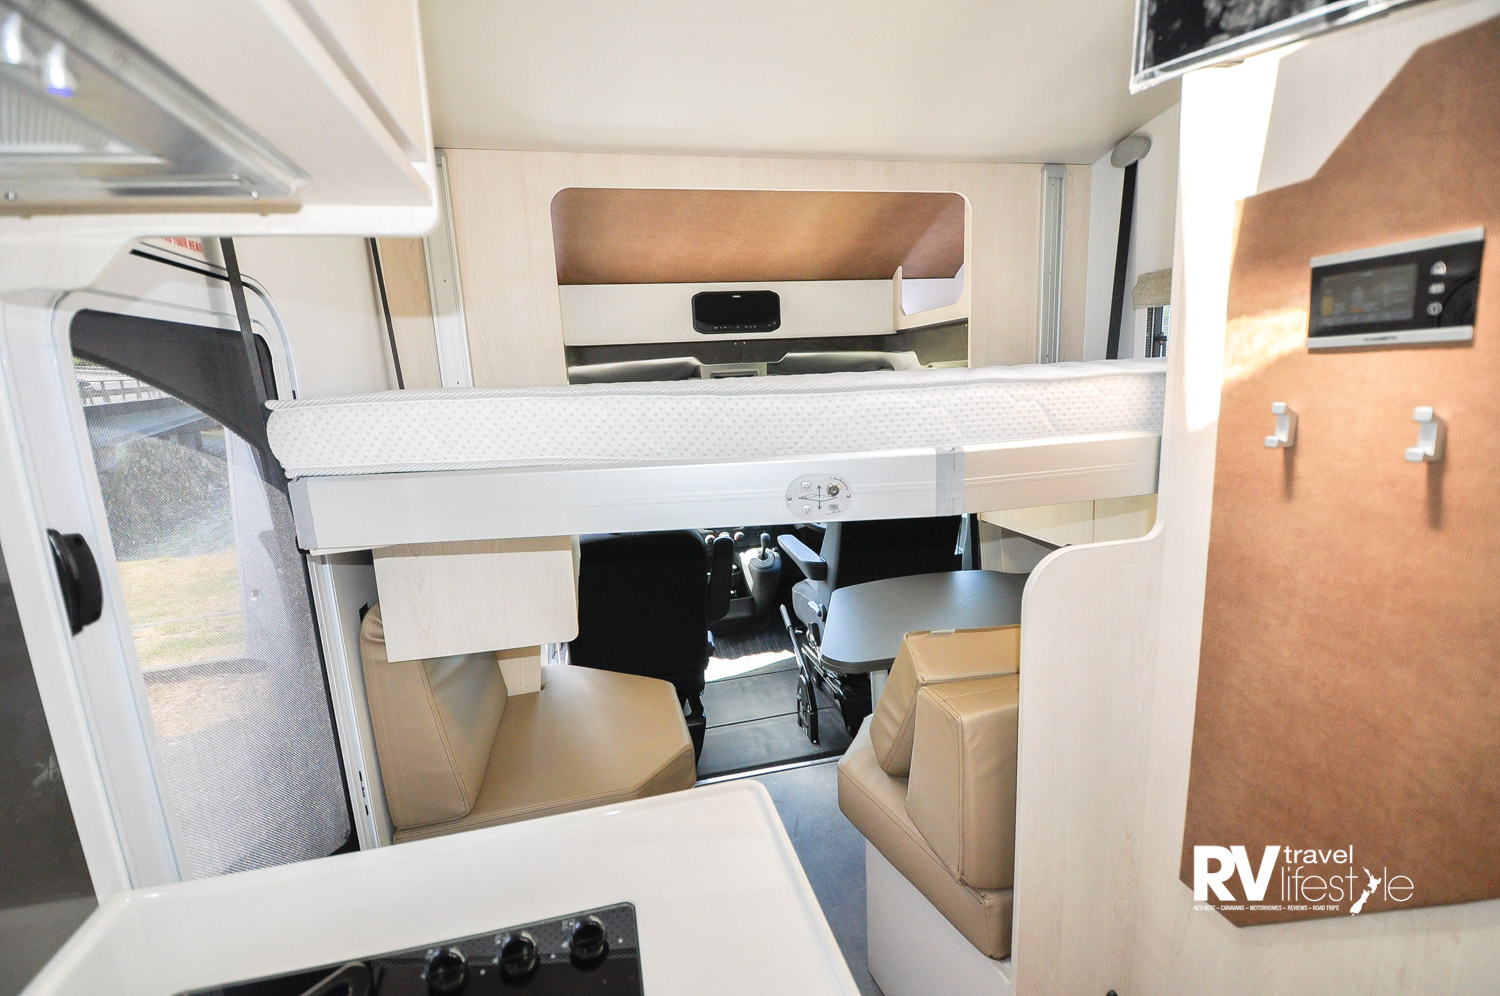 This model has two electric ceiling beds aimed at making the most of the floor space for living, this is over the dinette area behind the cab